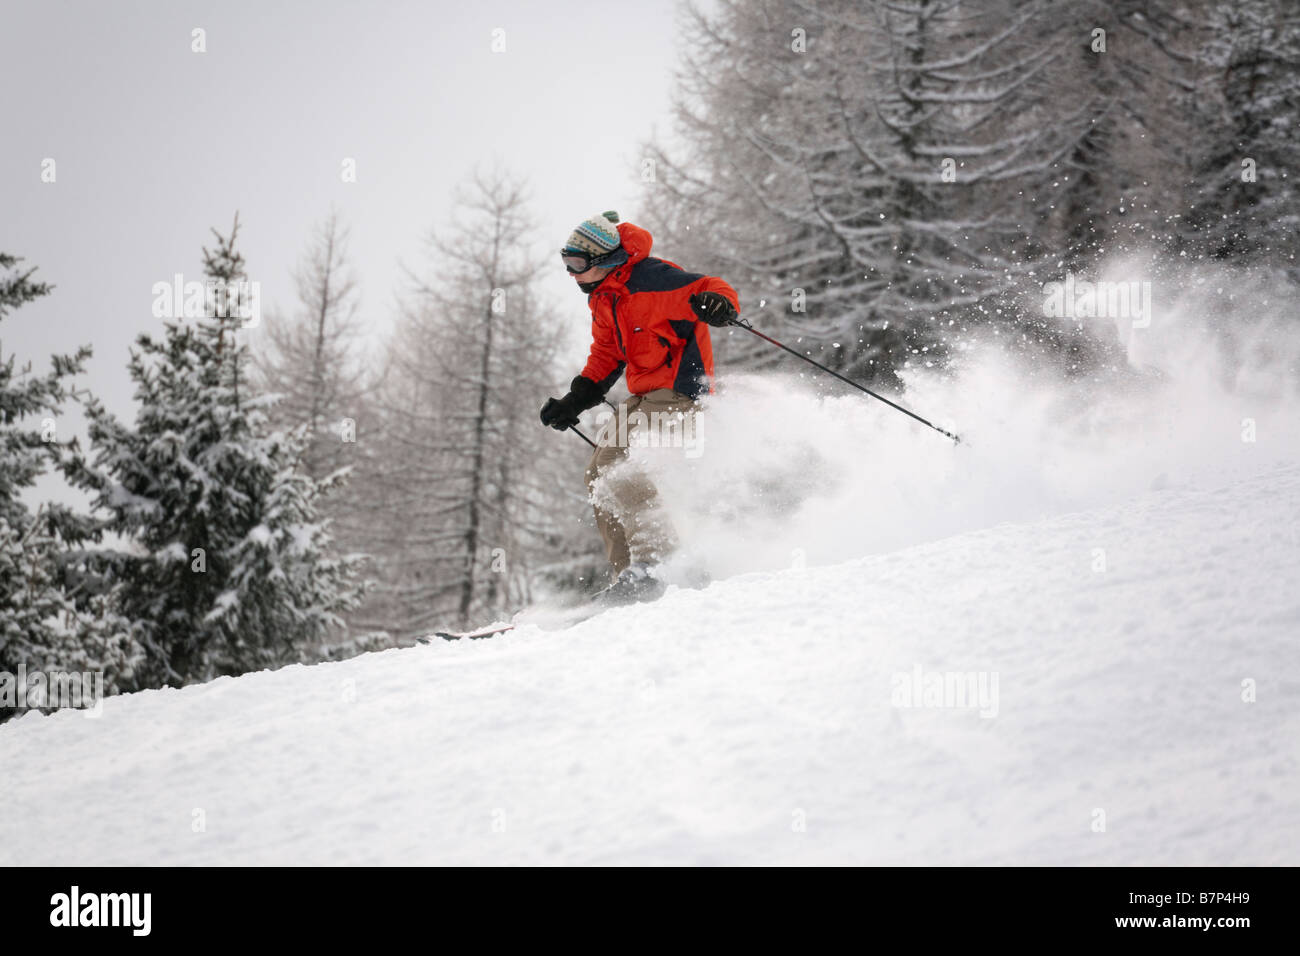 Skier wearing a red jacket skiing fast downhill in powder snow on ski slope piste in Austrian Alps. Rauris Austria - Stock Image